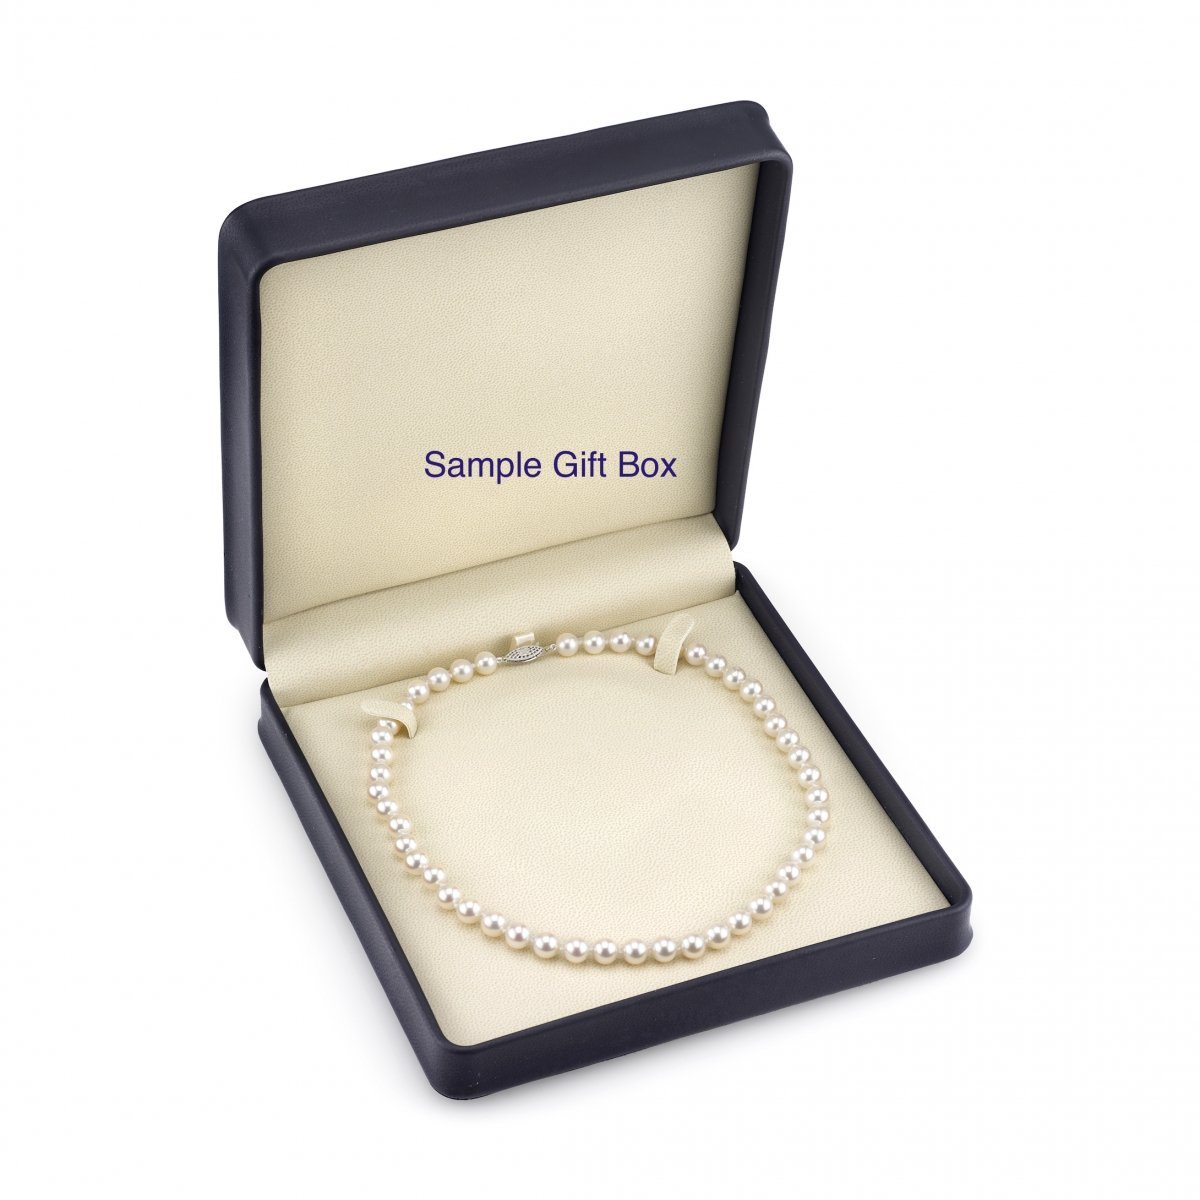 THE PEARL SOURCE 14K Gold 8.0-8.5mm AAA Quality Round Genuine White Japanese Akoya Saltwater Cultured Pearl Necklace in 20 Matinee Length for Women